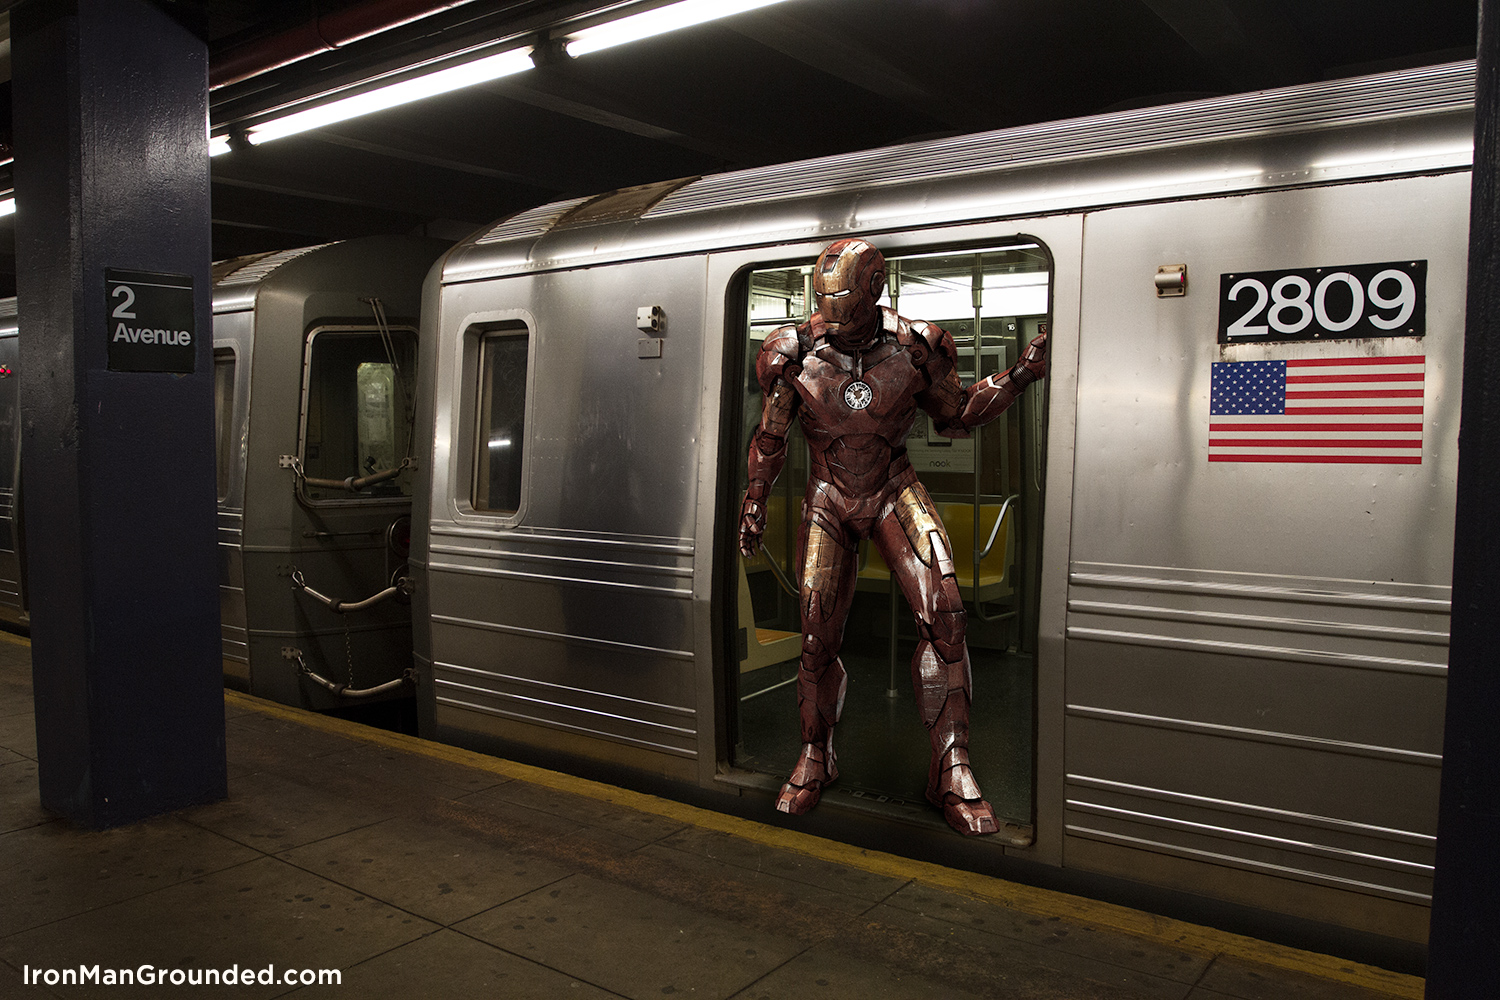 21_iron_man_grounded_new_york_subway_raffael_dickreuter